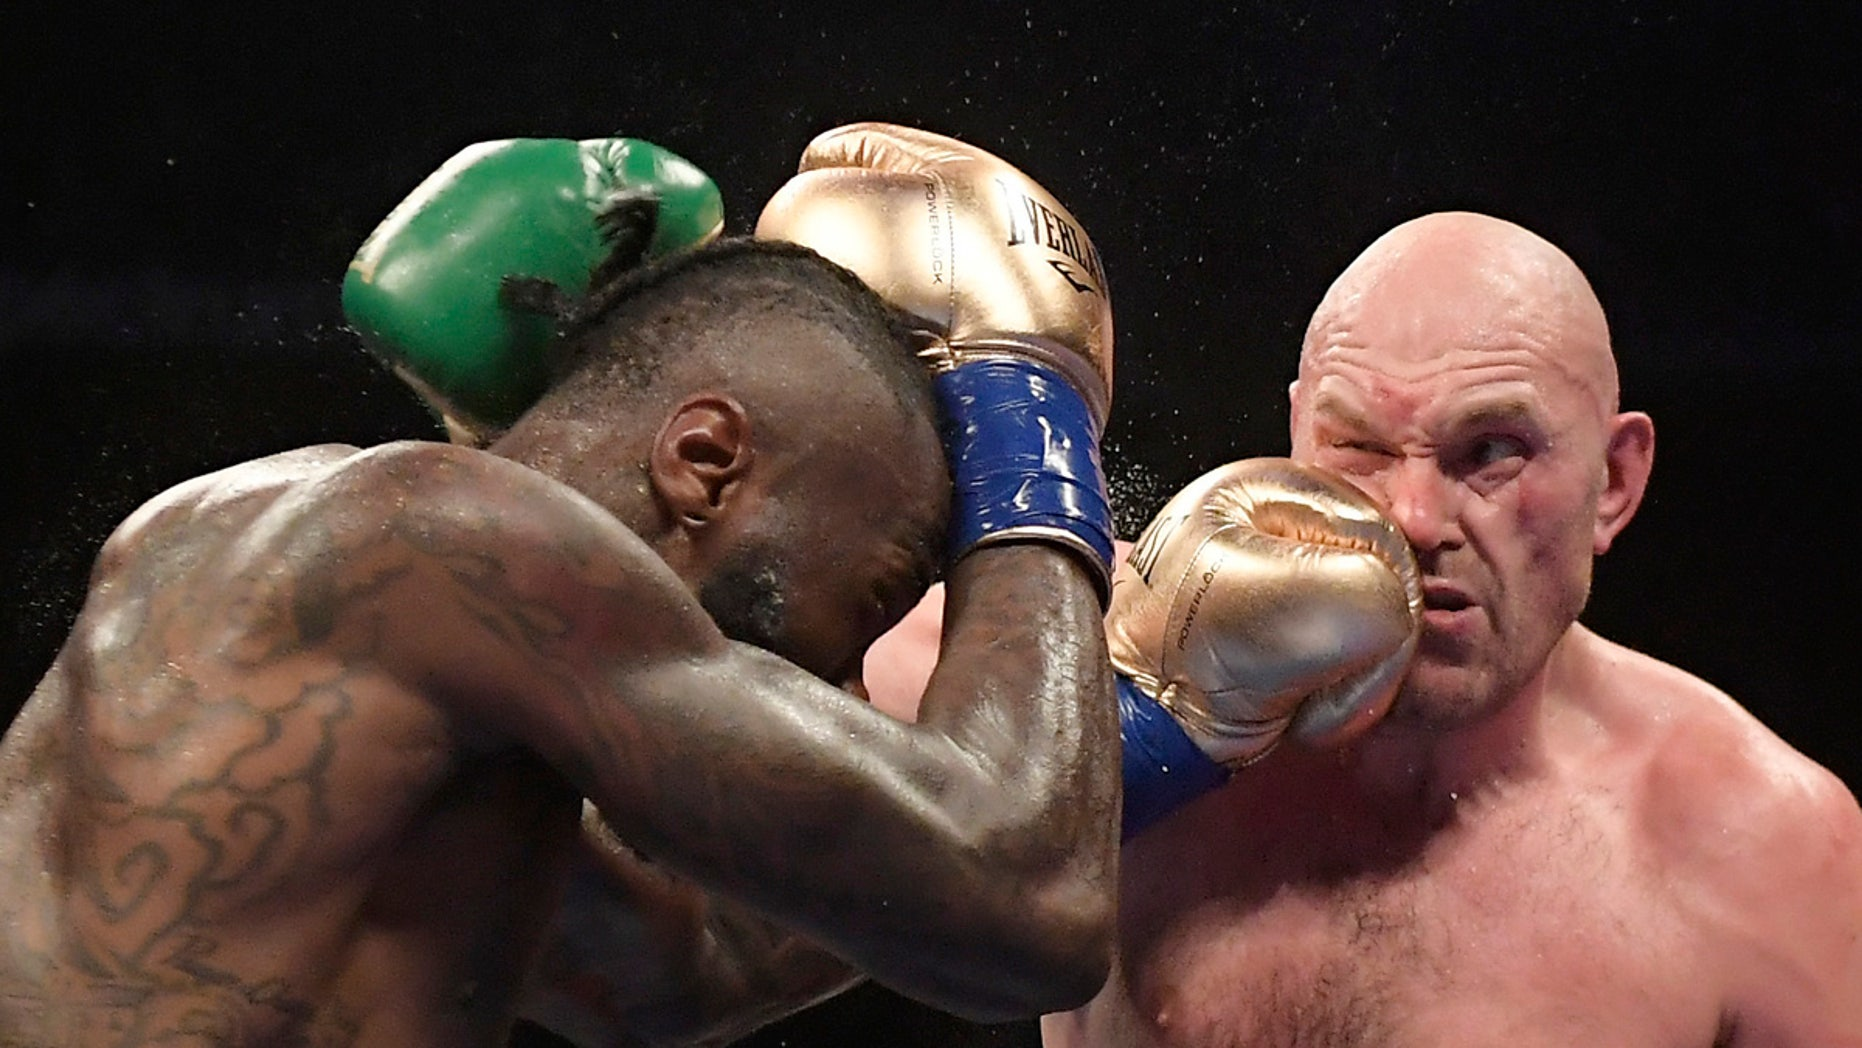 Deontay Wilder v Tyson Fury has 'changed whole dynamic of heavyweight division'